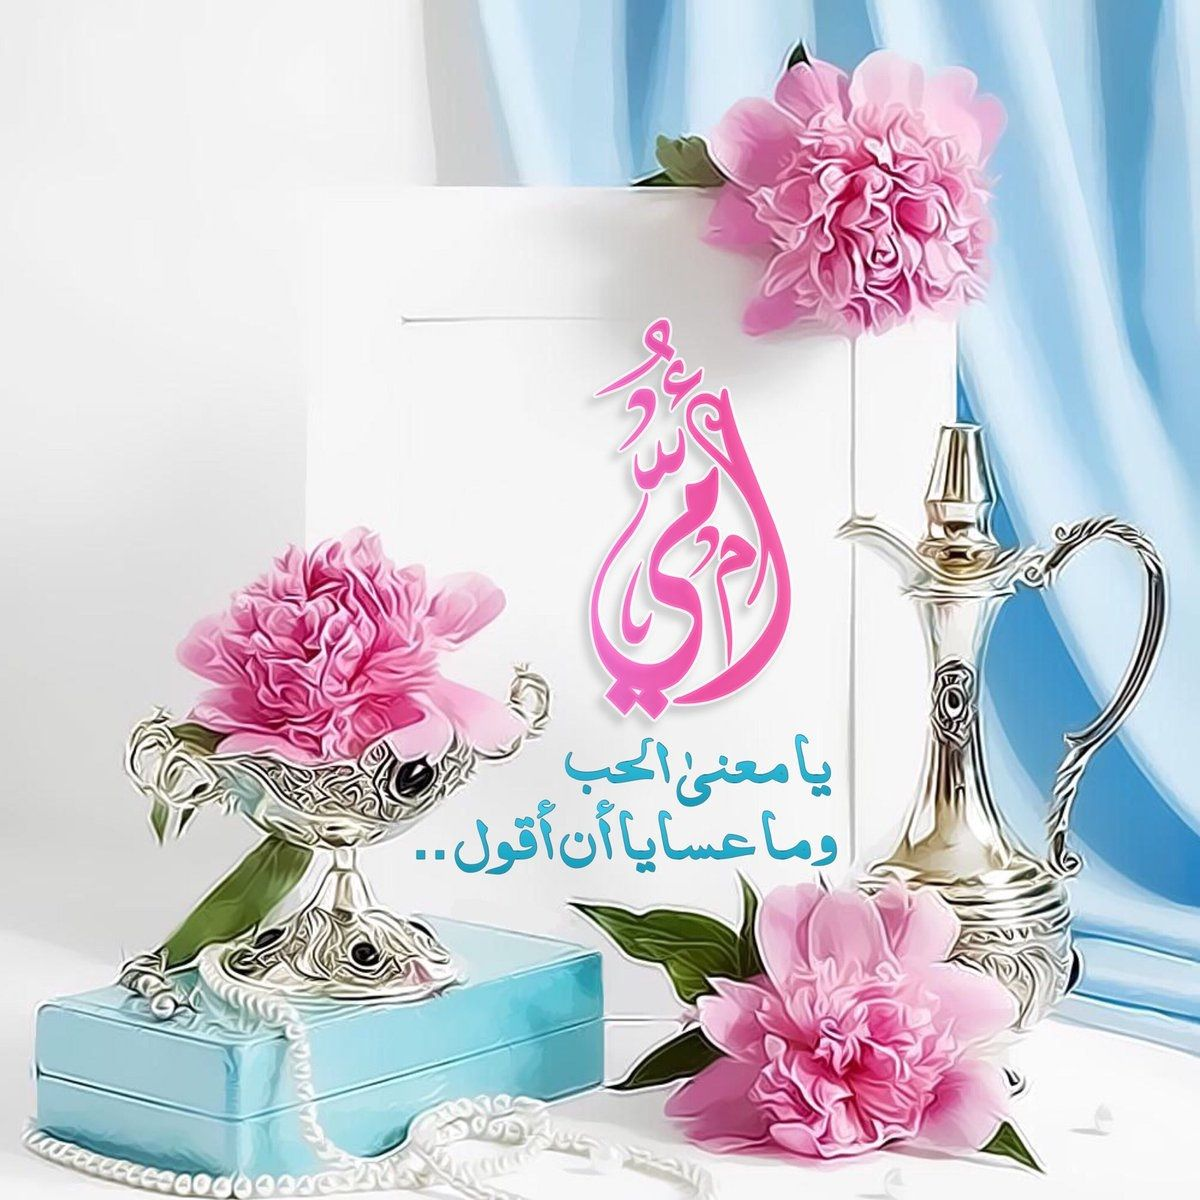 Pin By آمال On بطـاقـات صبـاحيـة واسـلاميـة Place Card Holders Mother Quotes Place Cards